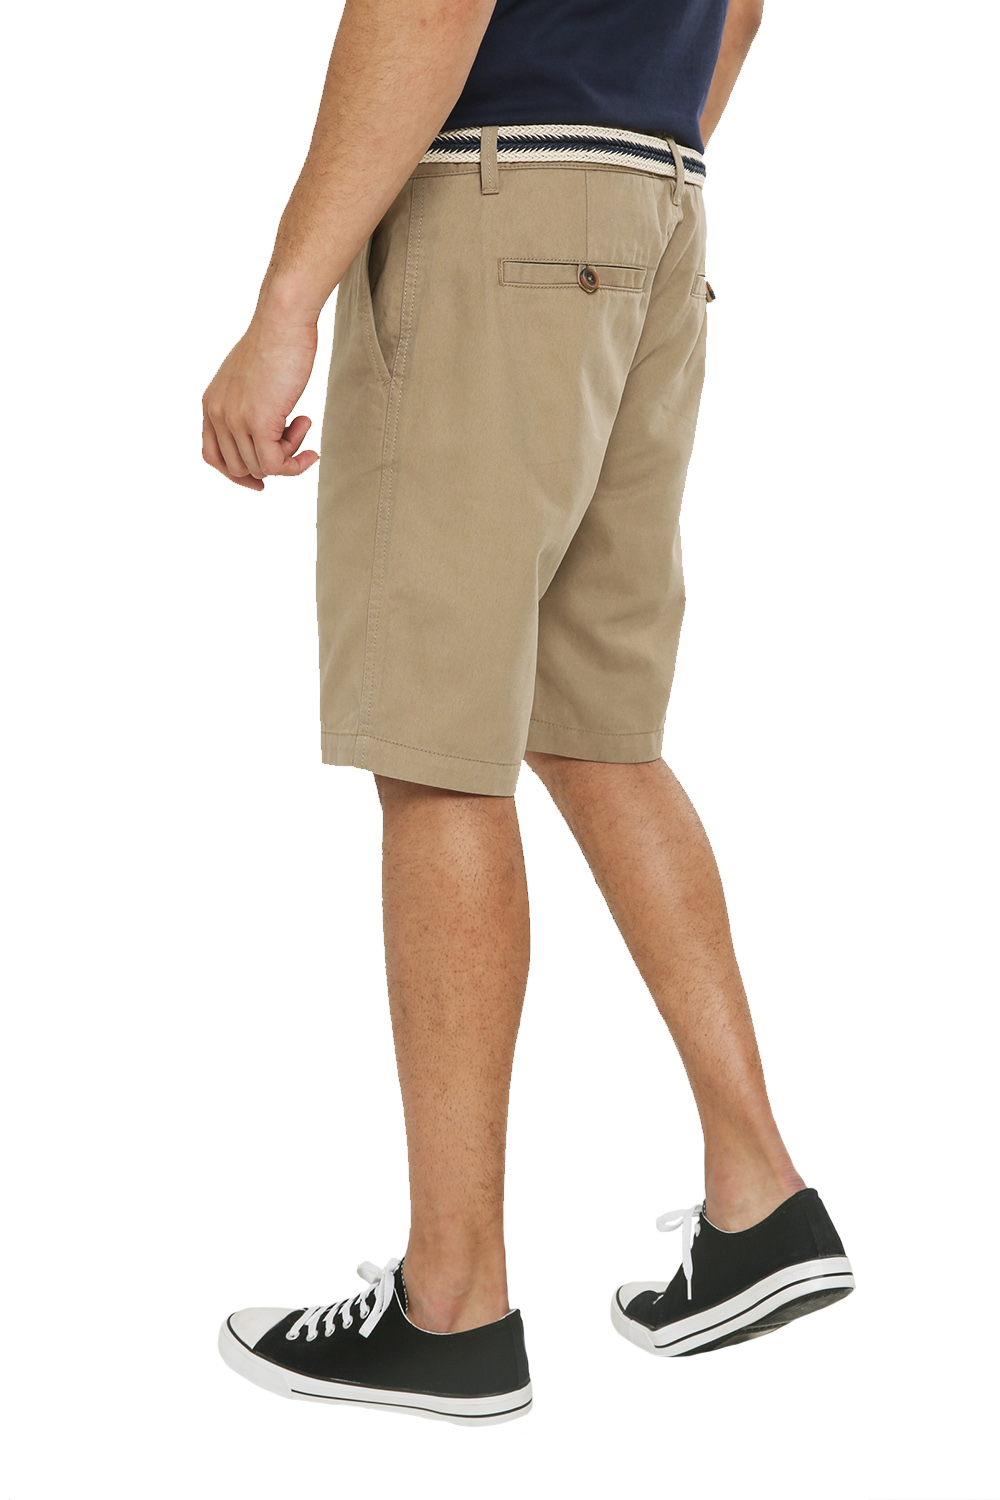 Threadbare-Mens-Slim-Fit-Belted-Chino-Shorts-Summer-Casual-Cotton-Smart-Bottoms thumbnail 27